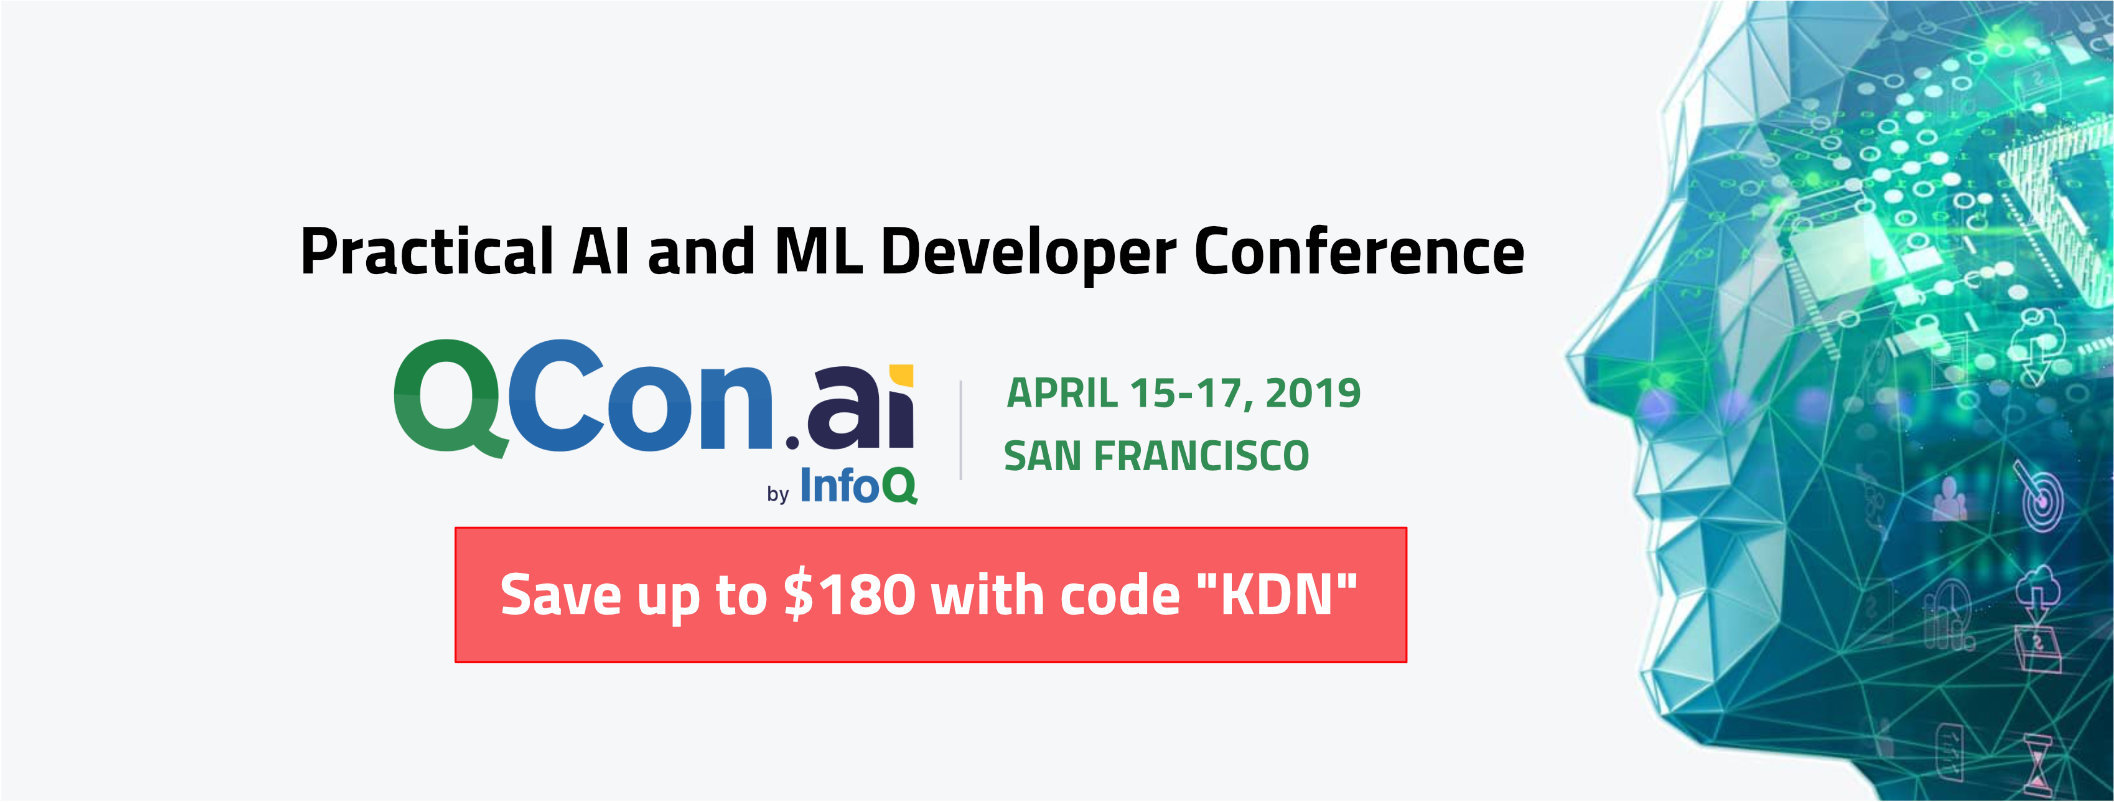 QCon ai San Francisco: Applied AI Software Conference for